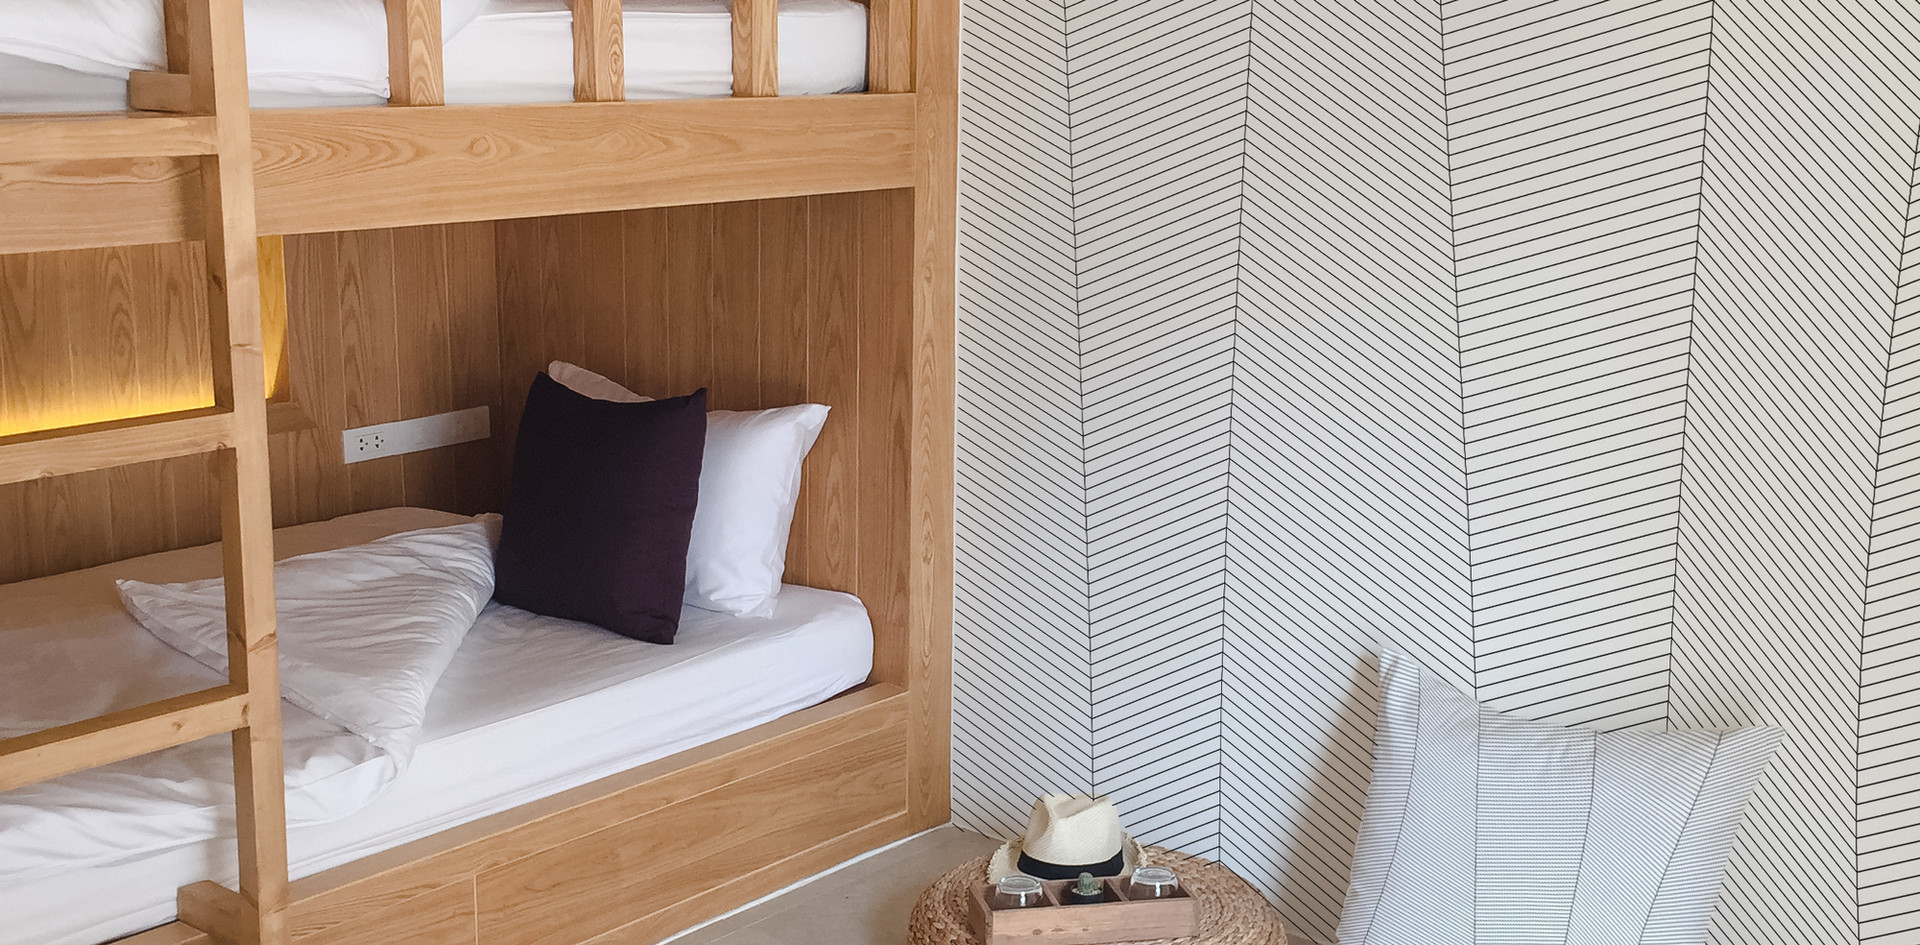 Hostel with Strata wallcovering and Cushion